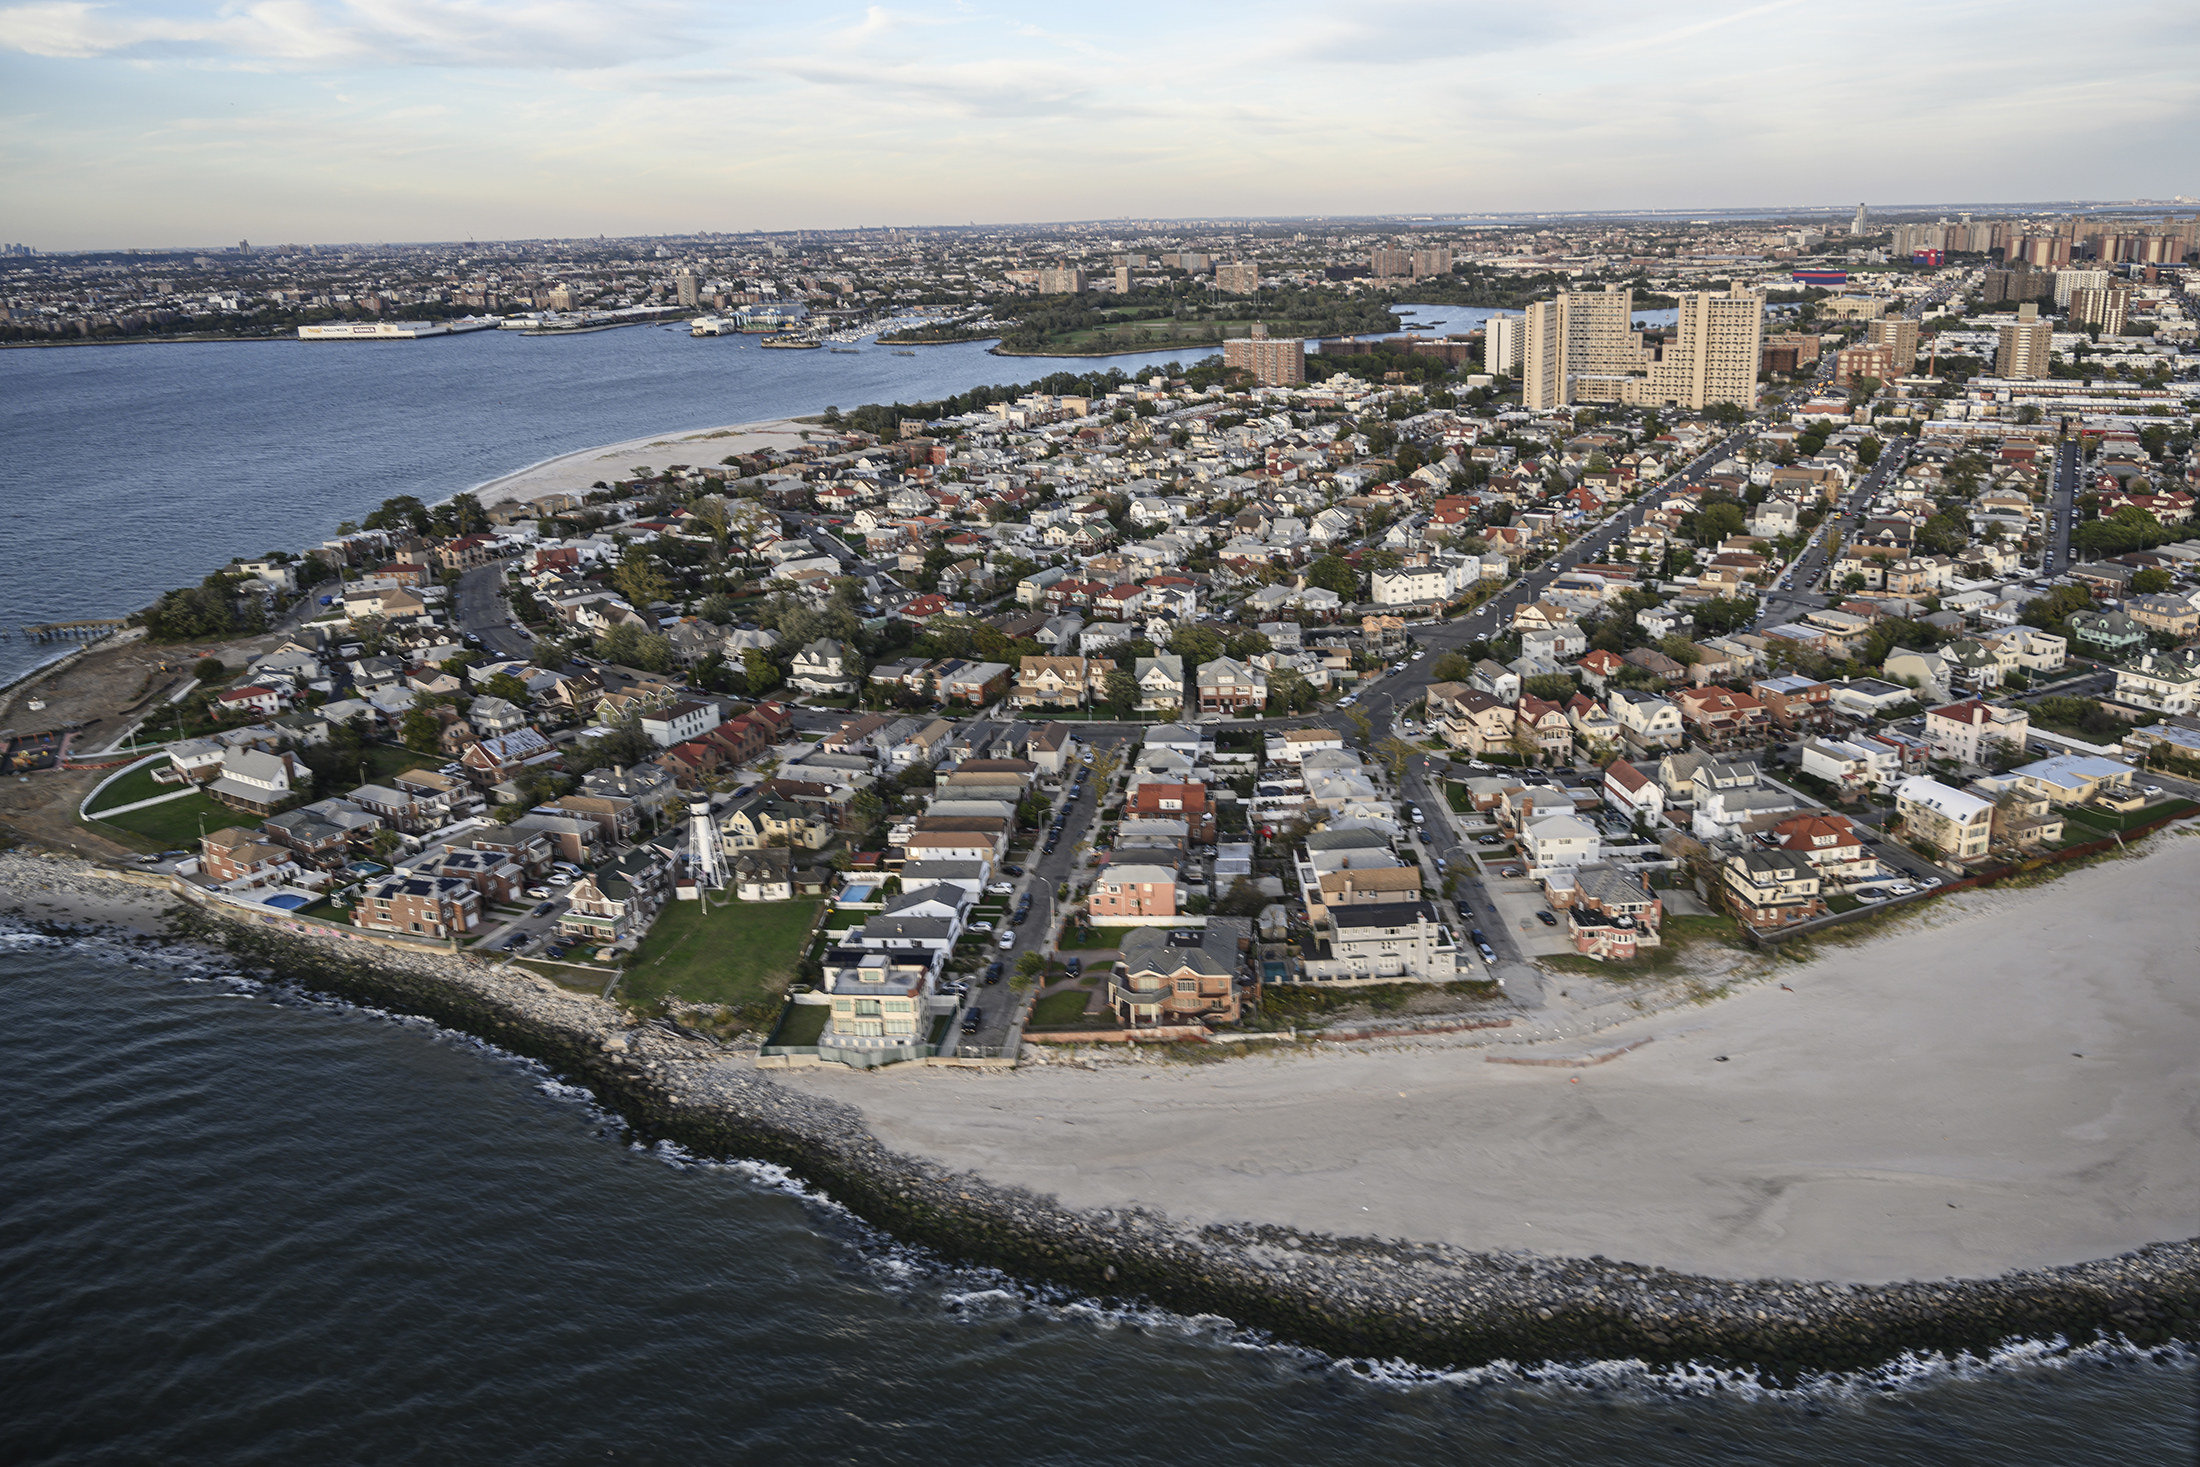 A large neighborhood right next to the shoreline